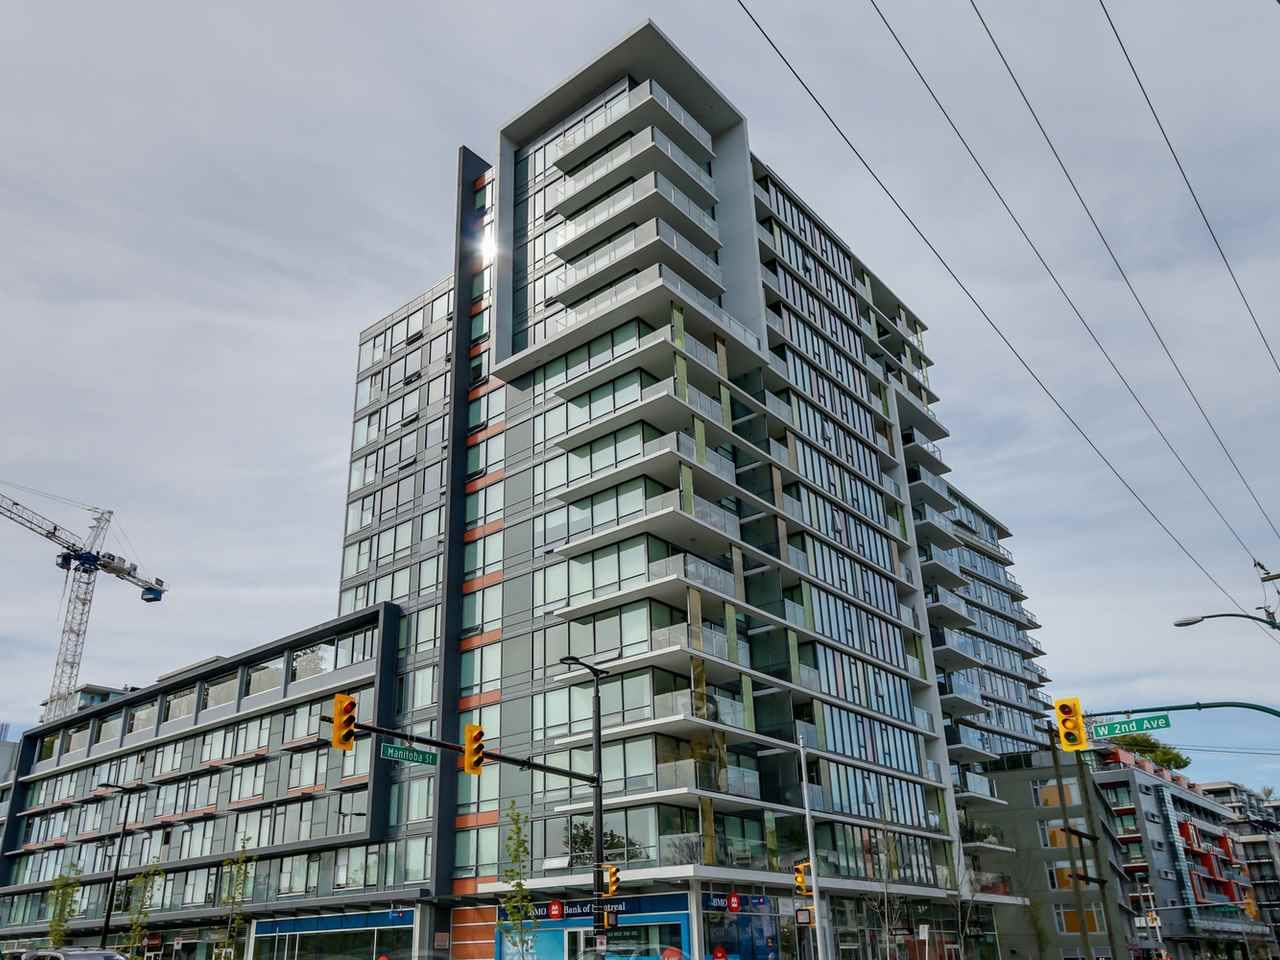 """Main Photo: 221 1783 MANITOBA Street in Vancouver: False Creek Condo for sale in """"Residences at West"""" (Vancouver West)  : MLS®# R2055907"""